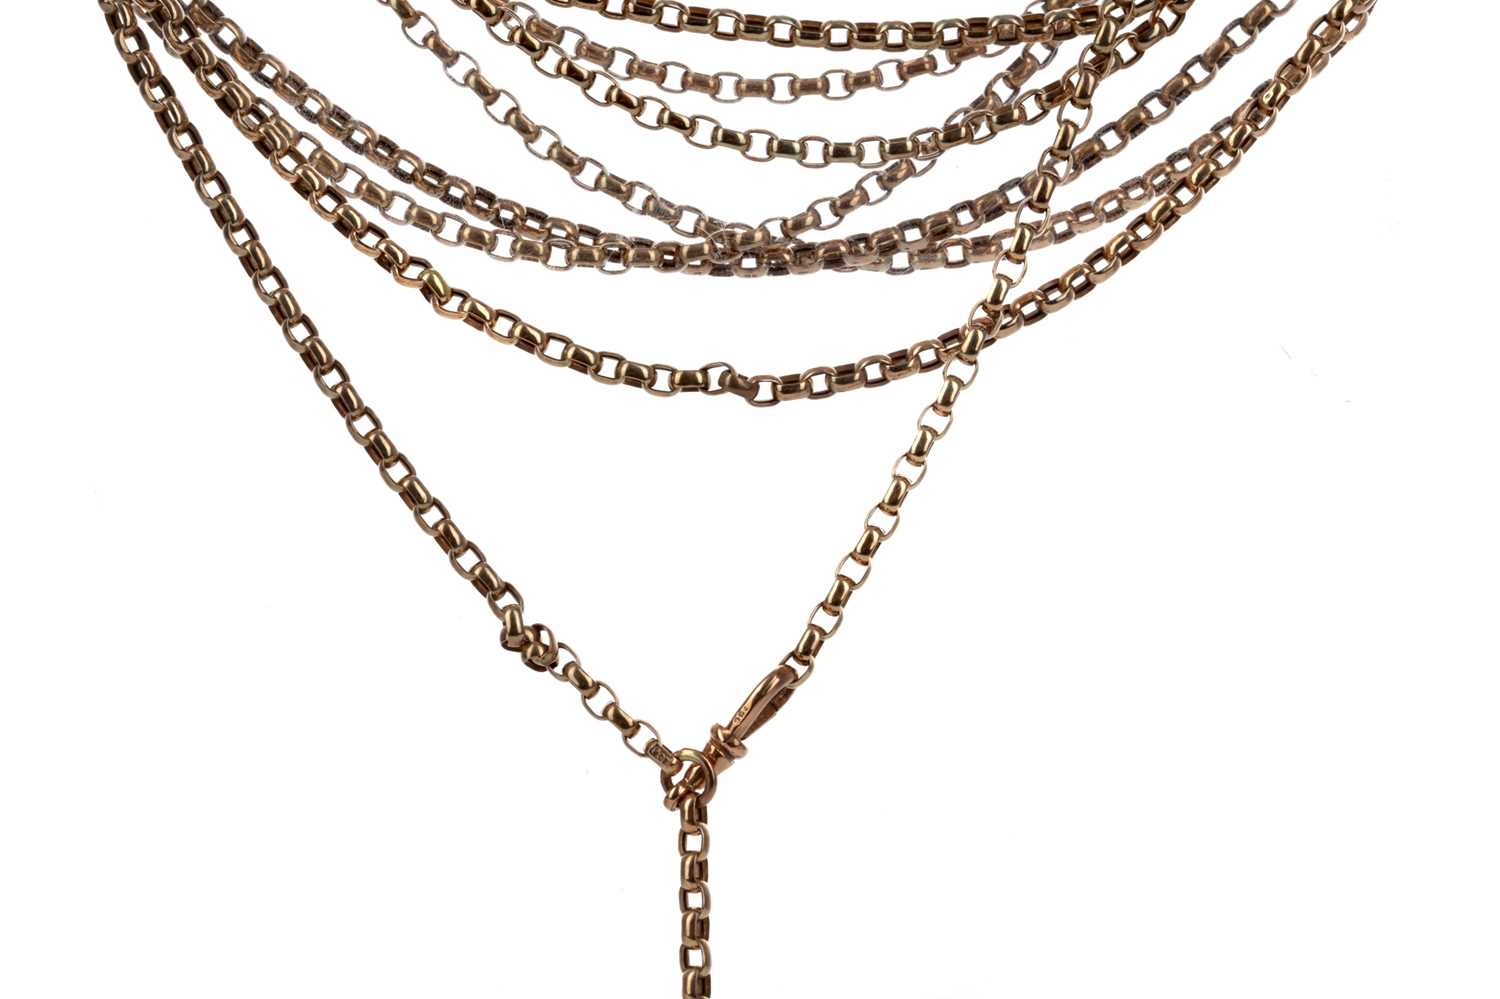 Lot 313 - A GOLD GUARD CHAIN AND A BRACELET